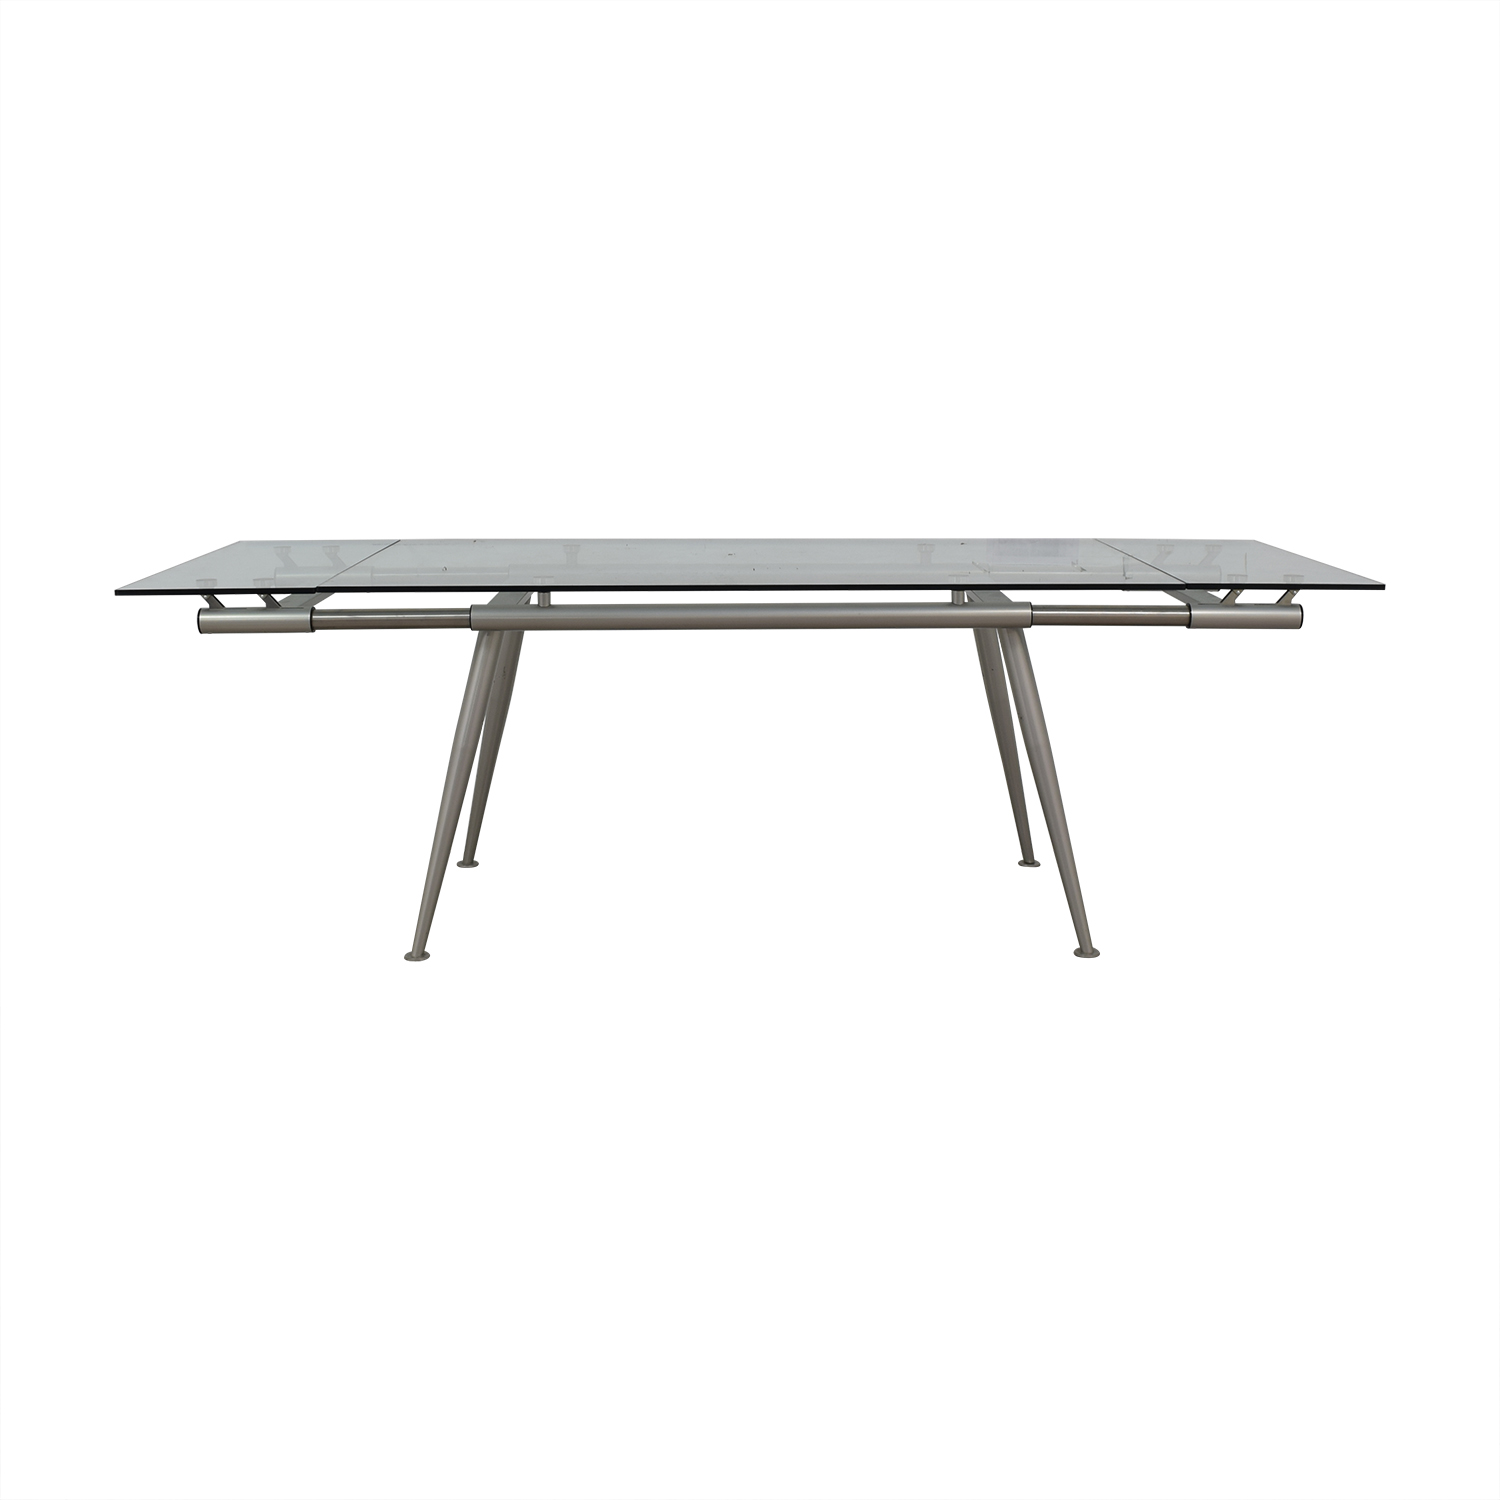 Calligaris Calligaris Modern Glass Extendable Dining Table dimensions